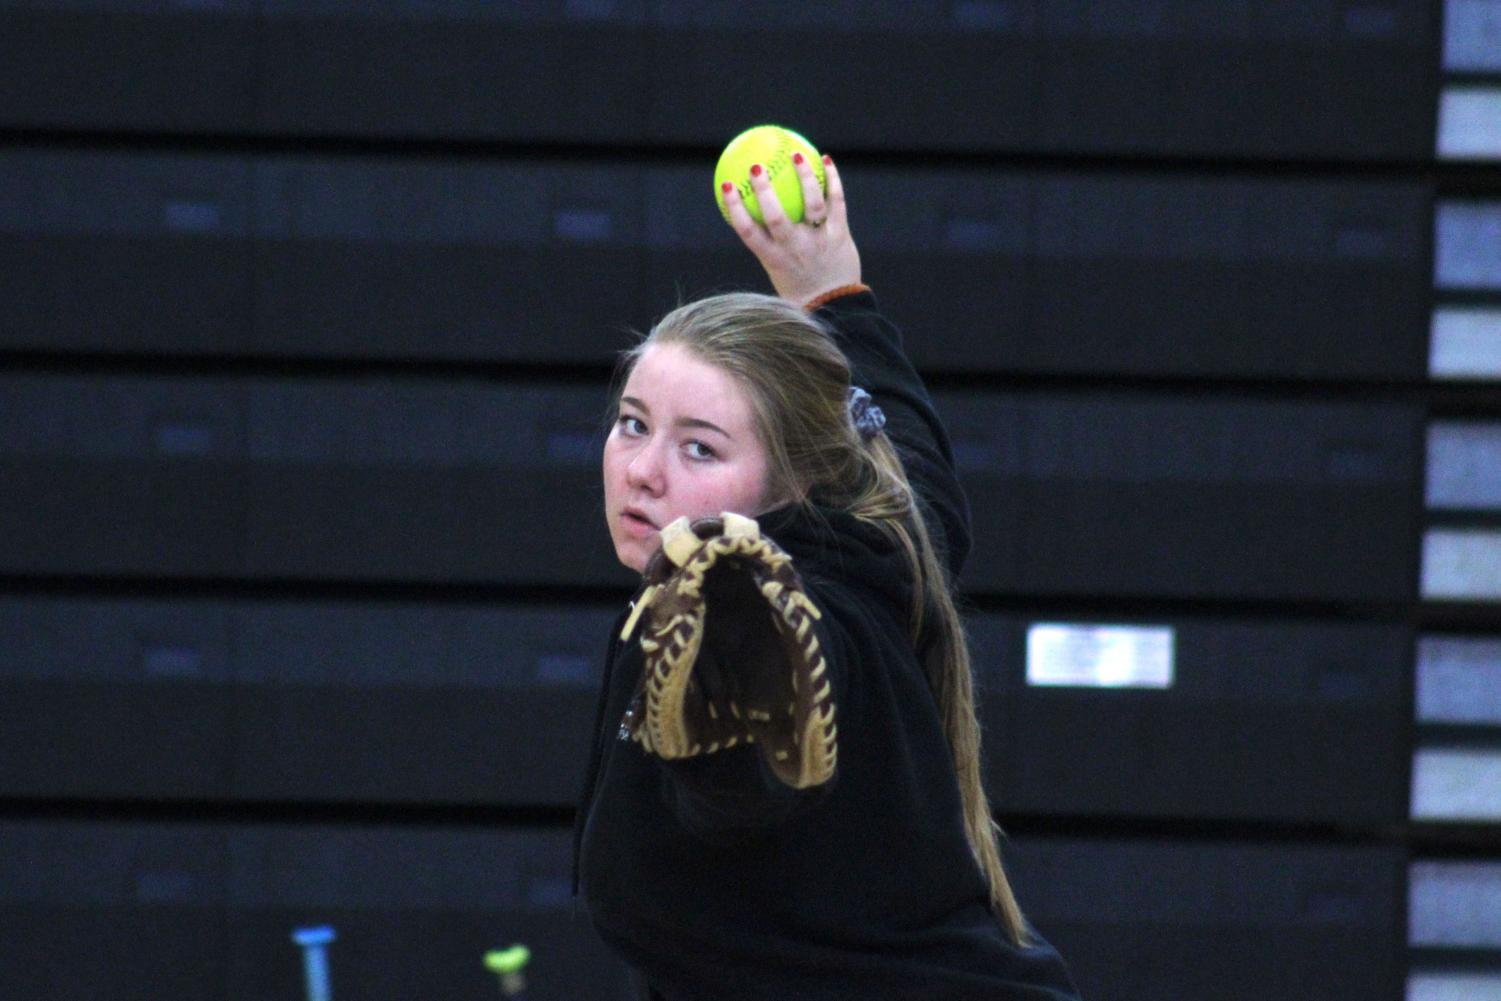 Senior Maddy Schmitz pitches the ball to a teammate during softball tryouts March 13. The teams' first game will be 4:30 p.m. April 9 at New Hope Learning Center against Robbinsdale Cooper.